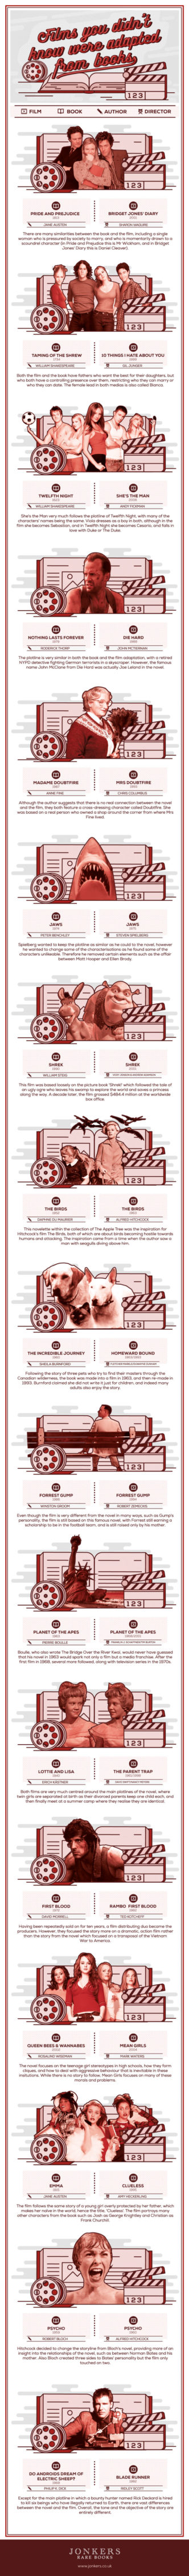 Films that were adapted from books #infographic